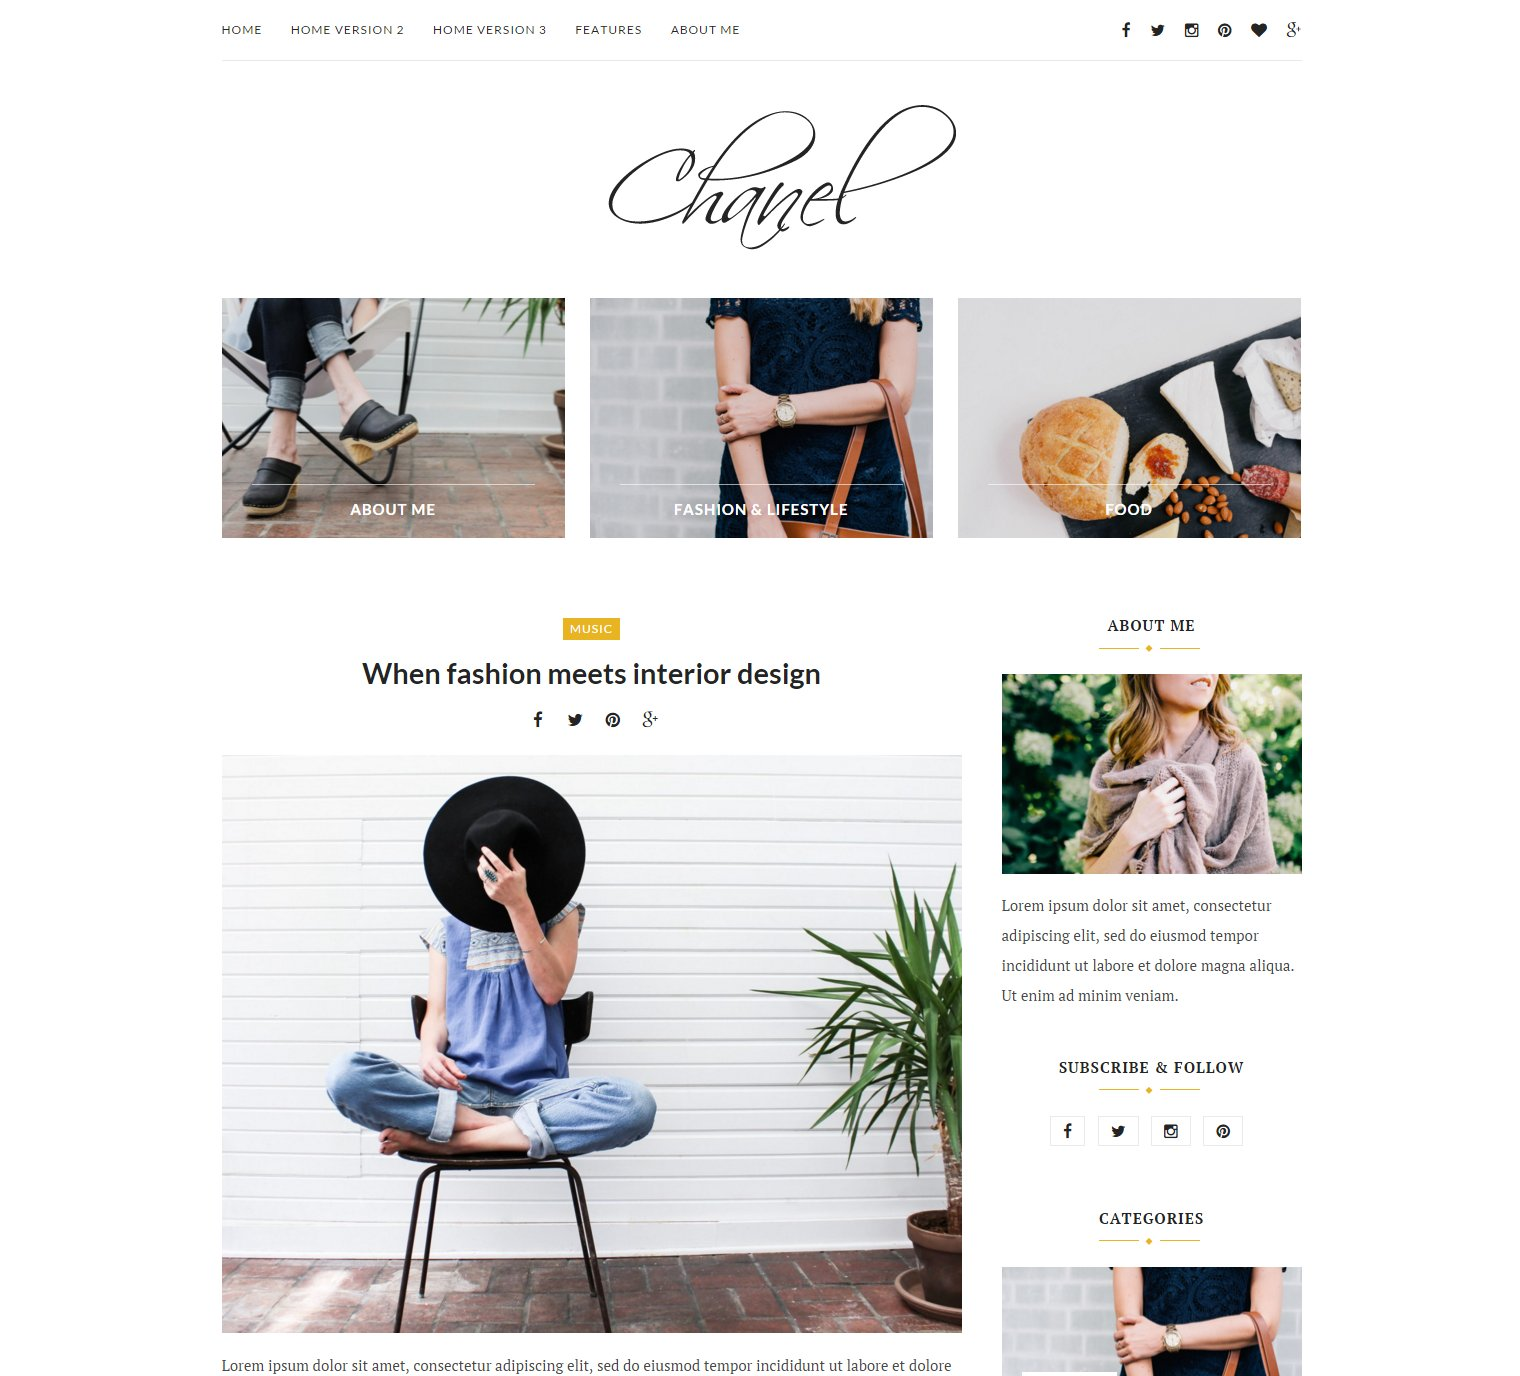 Chanel Wordpress Blog Theme WordPress Blog Themes Creative Market - Free invoice template with logo chanel online store